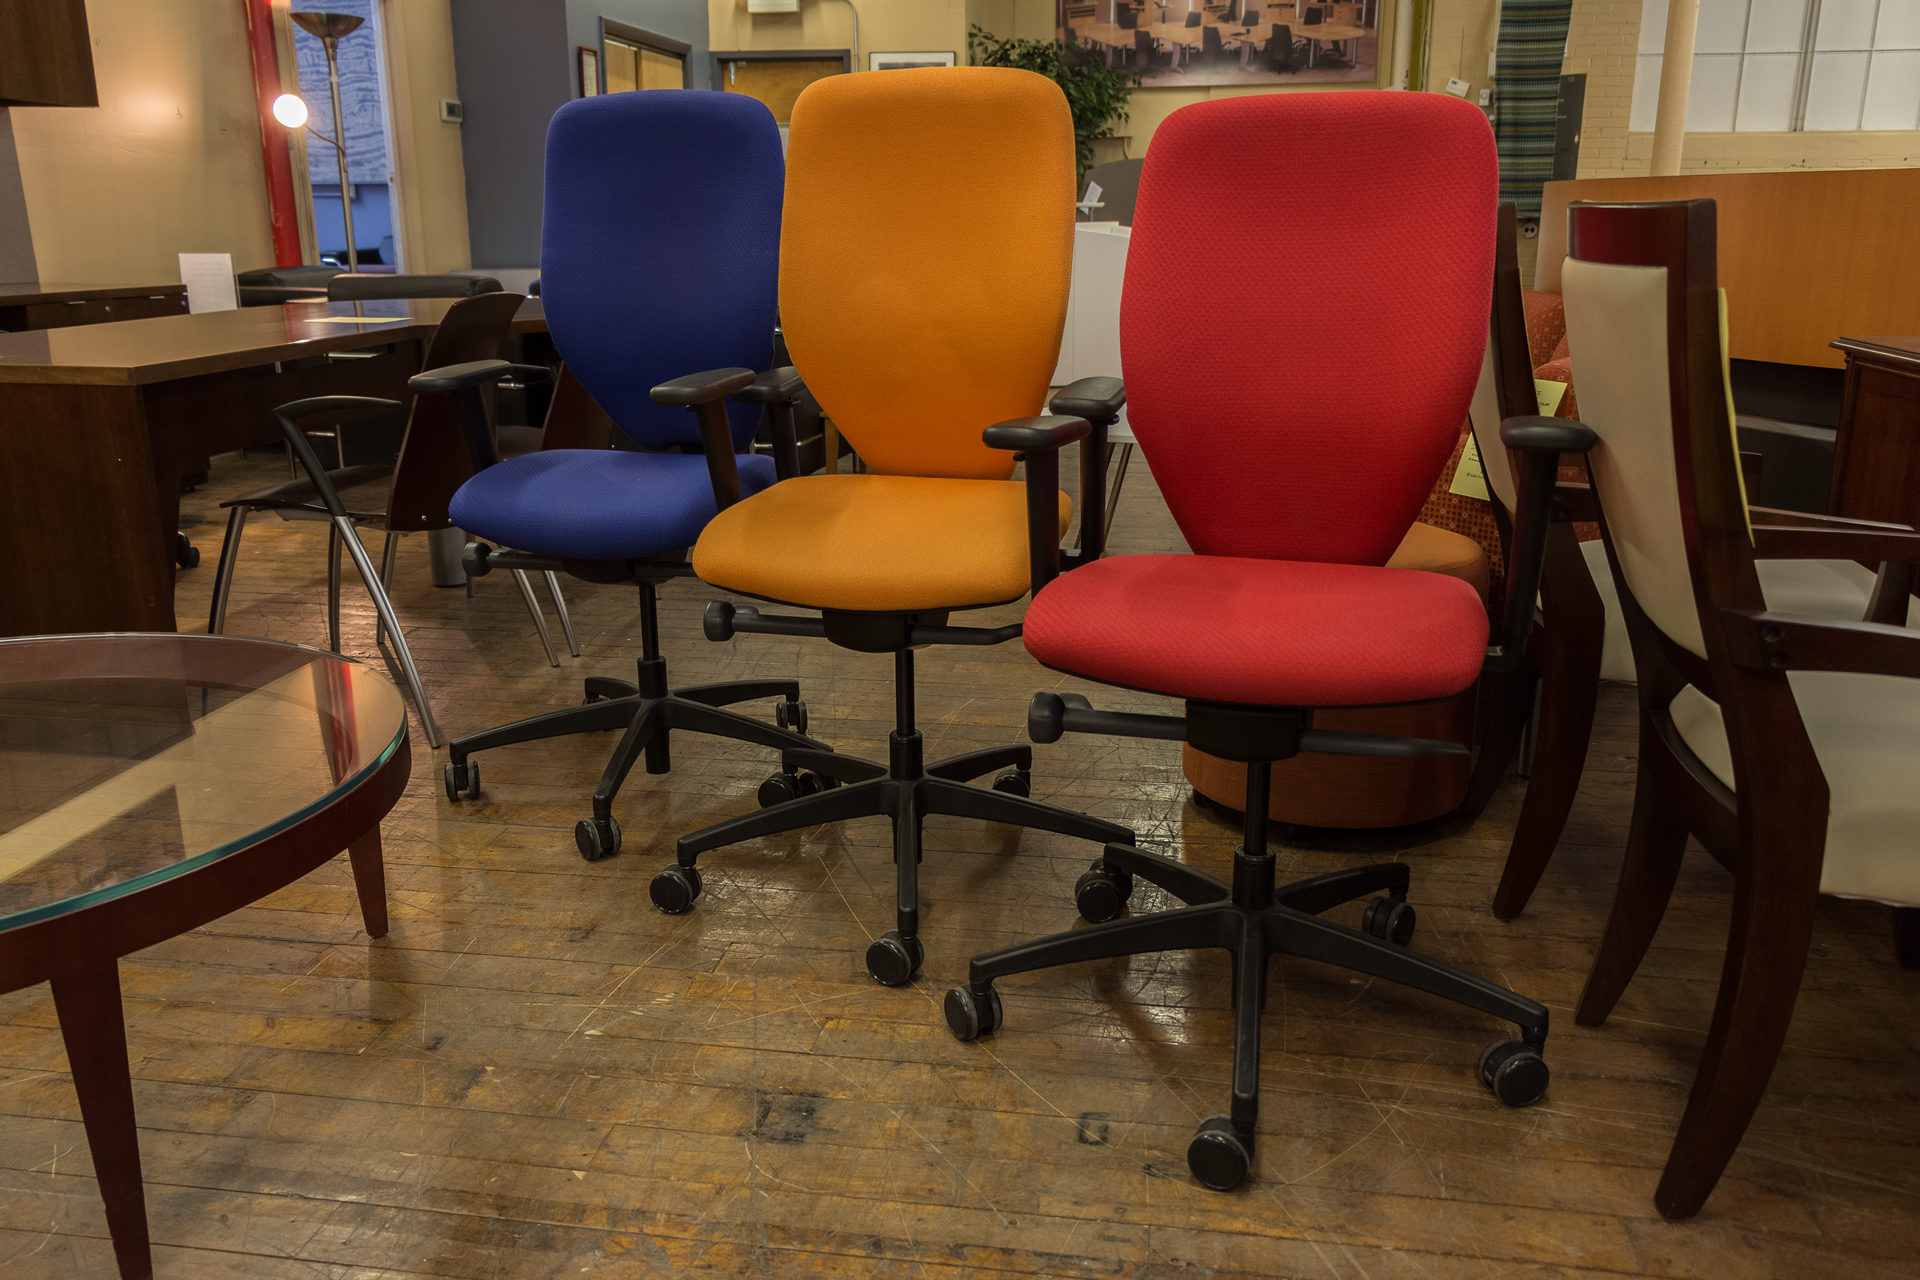 Boss Design Multi-function Task Chairs in Red, Blue, and Orange